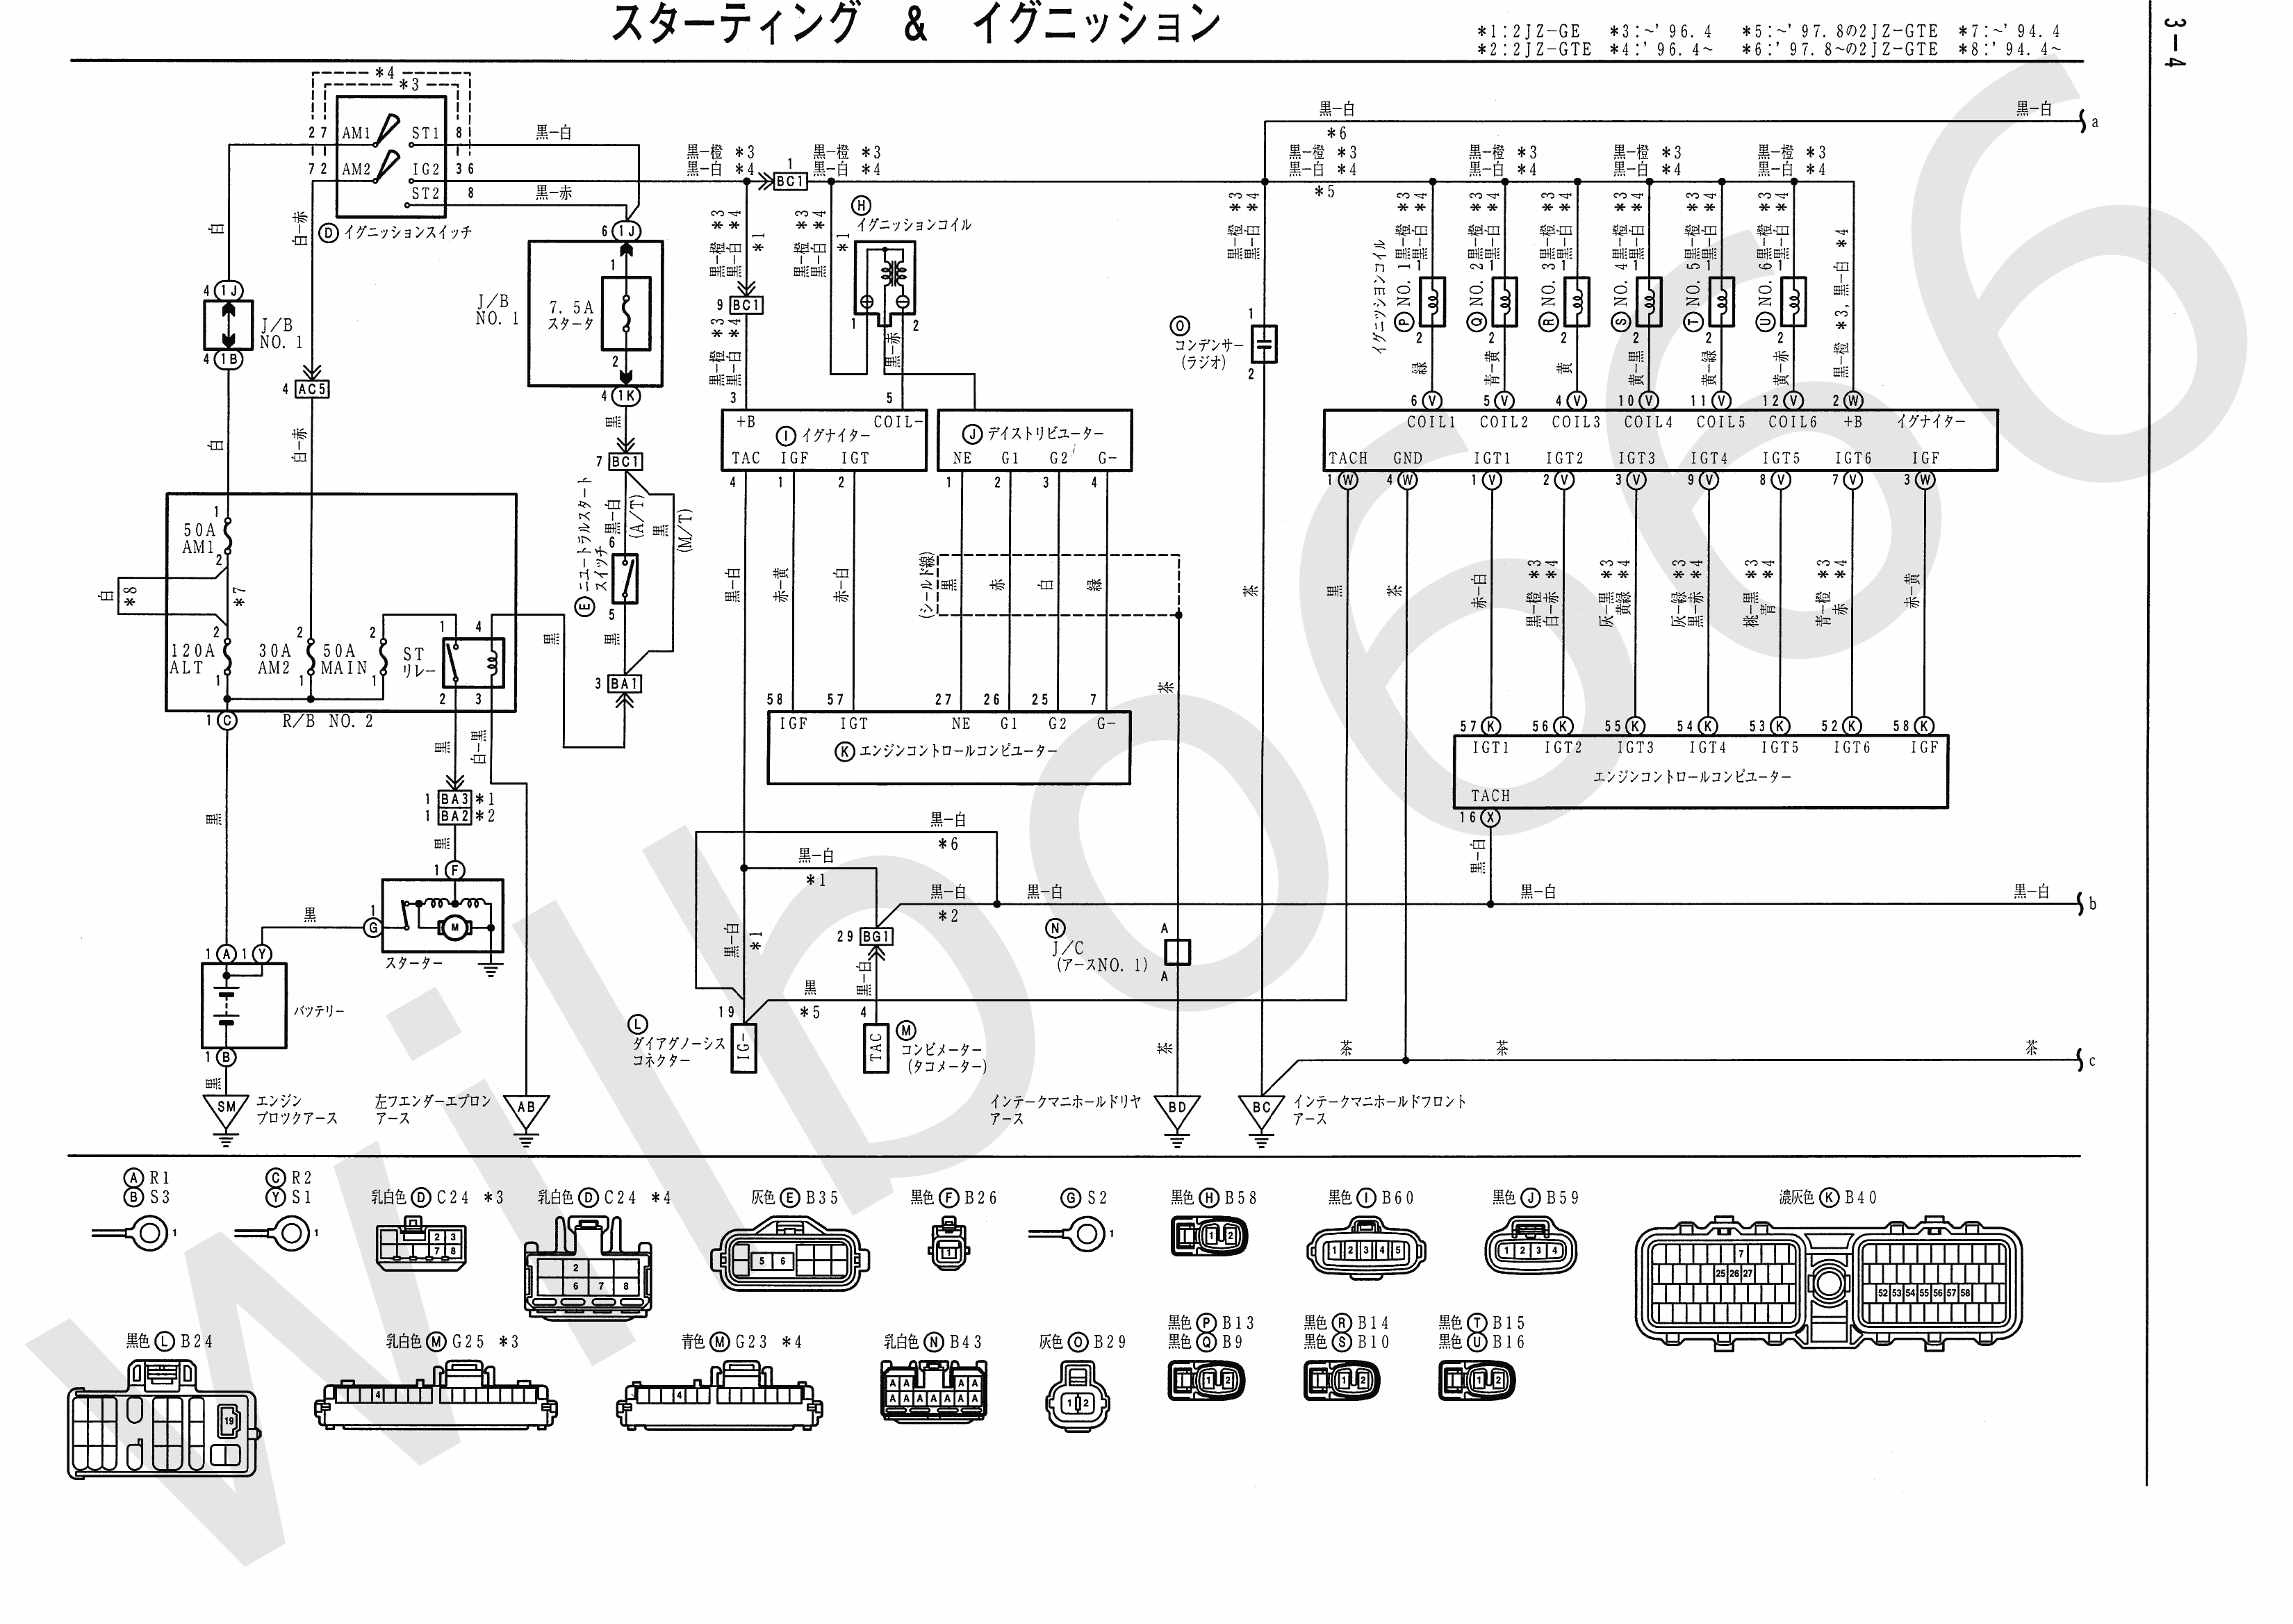 toyota supra electrical wiring diagram with 2jz Ge 20jza80 20supra 20engine 20wiring on Jeep Cherokee Headlight Wiring Diagram With 95 Jeep Grand Cherokee Fuse Box Diagram furthermore 2JZ GE 20JZA80 20Supra 20Engine 20Wiring besides Porsche Racing Hybrids additionally Jeep Grand Cherokee 1993 1998 Why Dont My Running Or Dash Lights Work 399107 besides P 0900c152801ce6dd.